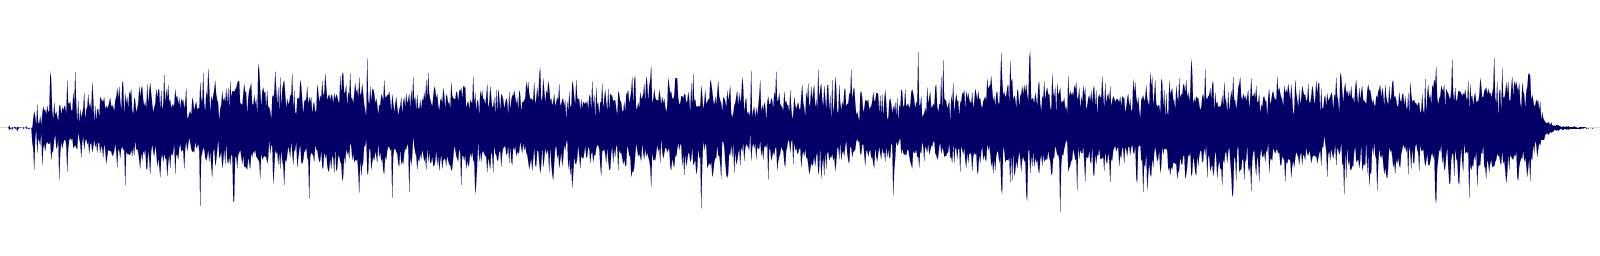 waveform of track #92596